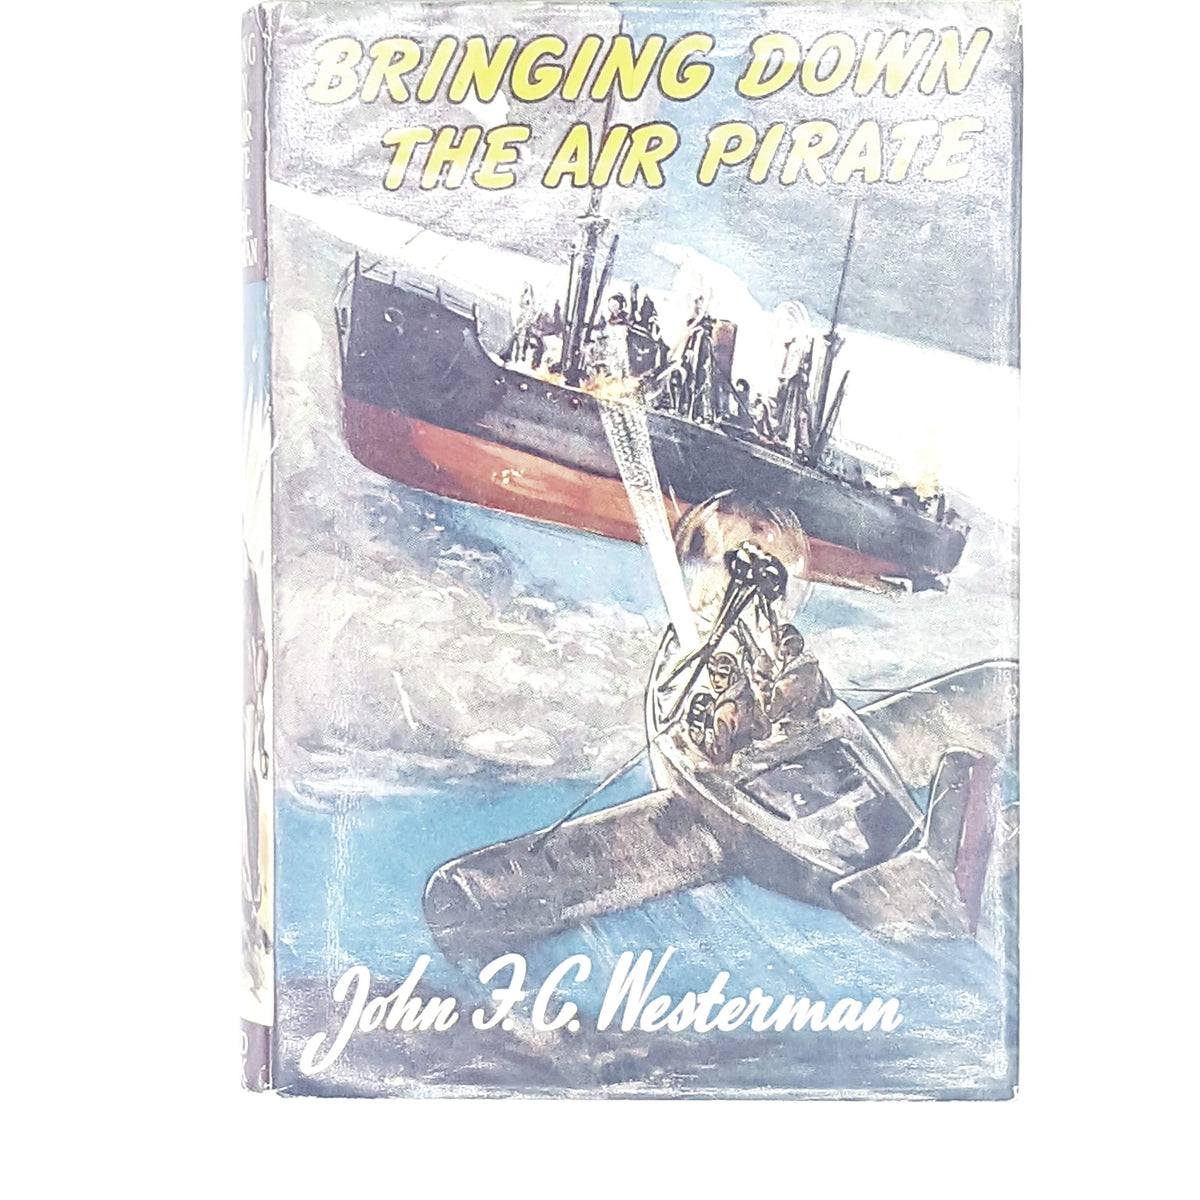 Bringing Down the Air Pirate by John F. C. Westerman